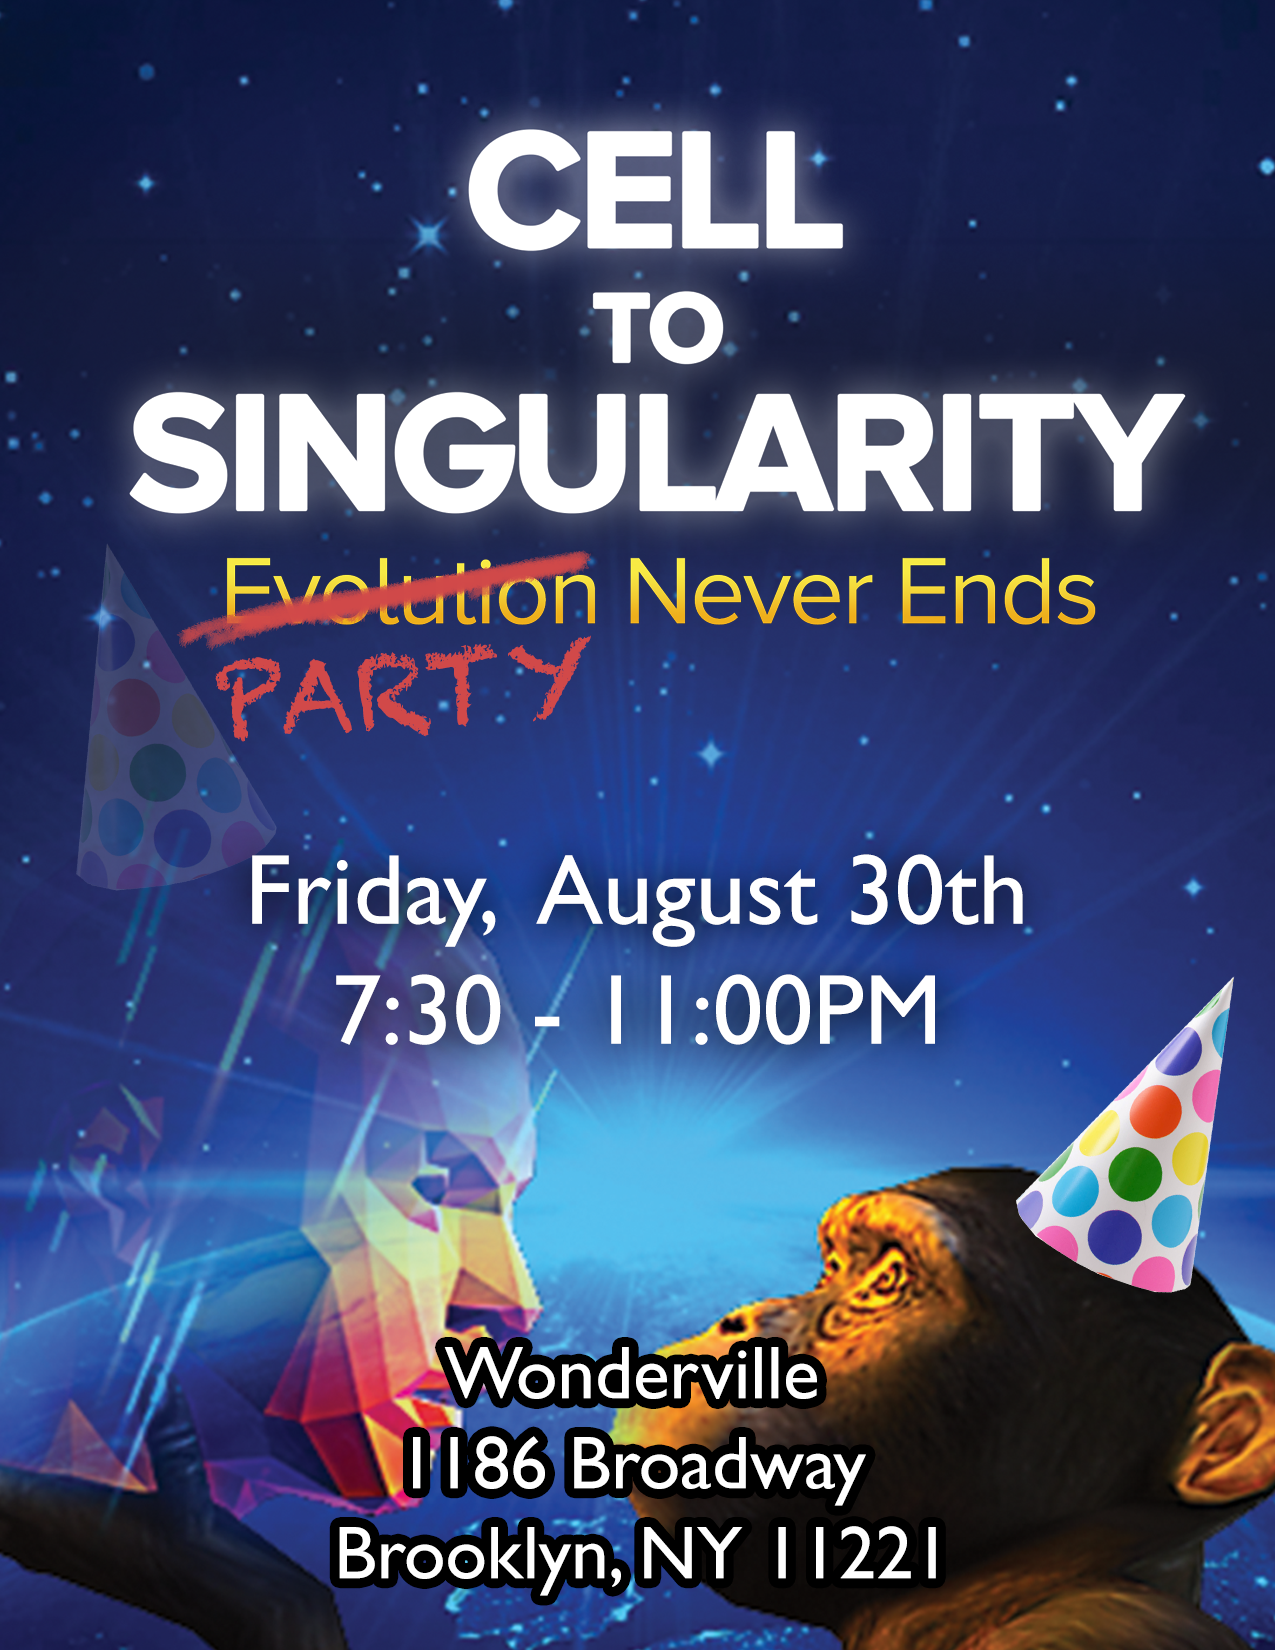 RSVP:  https://withfriends.co/Event/2468501/Cell_to_Singularity_Party_Never_Ends